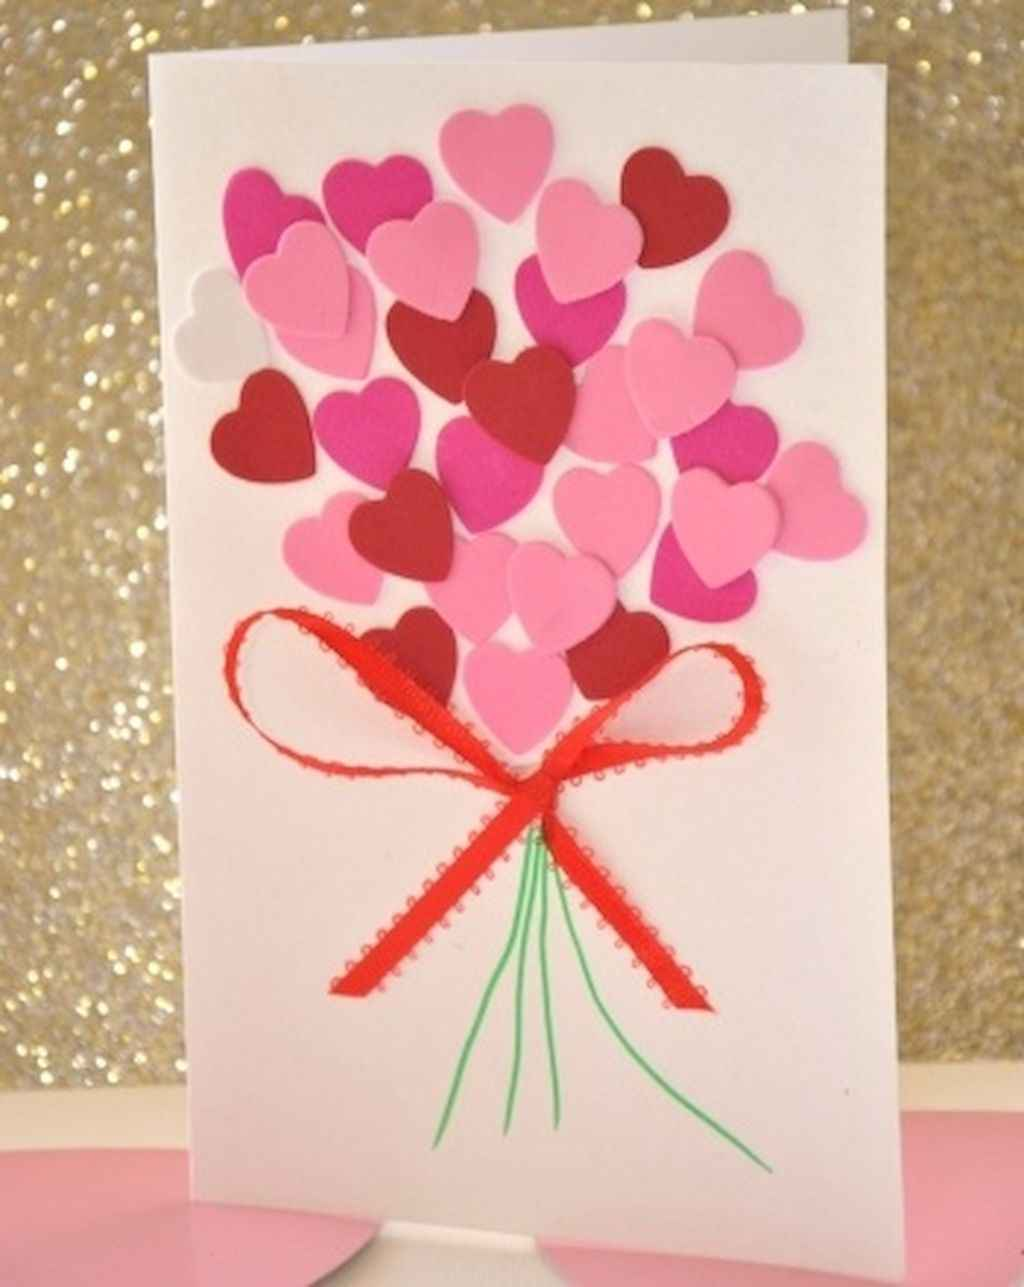 60 Romantic Valentines Crafts Ideas On A Budget (19)